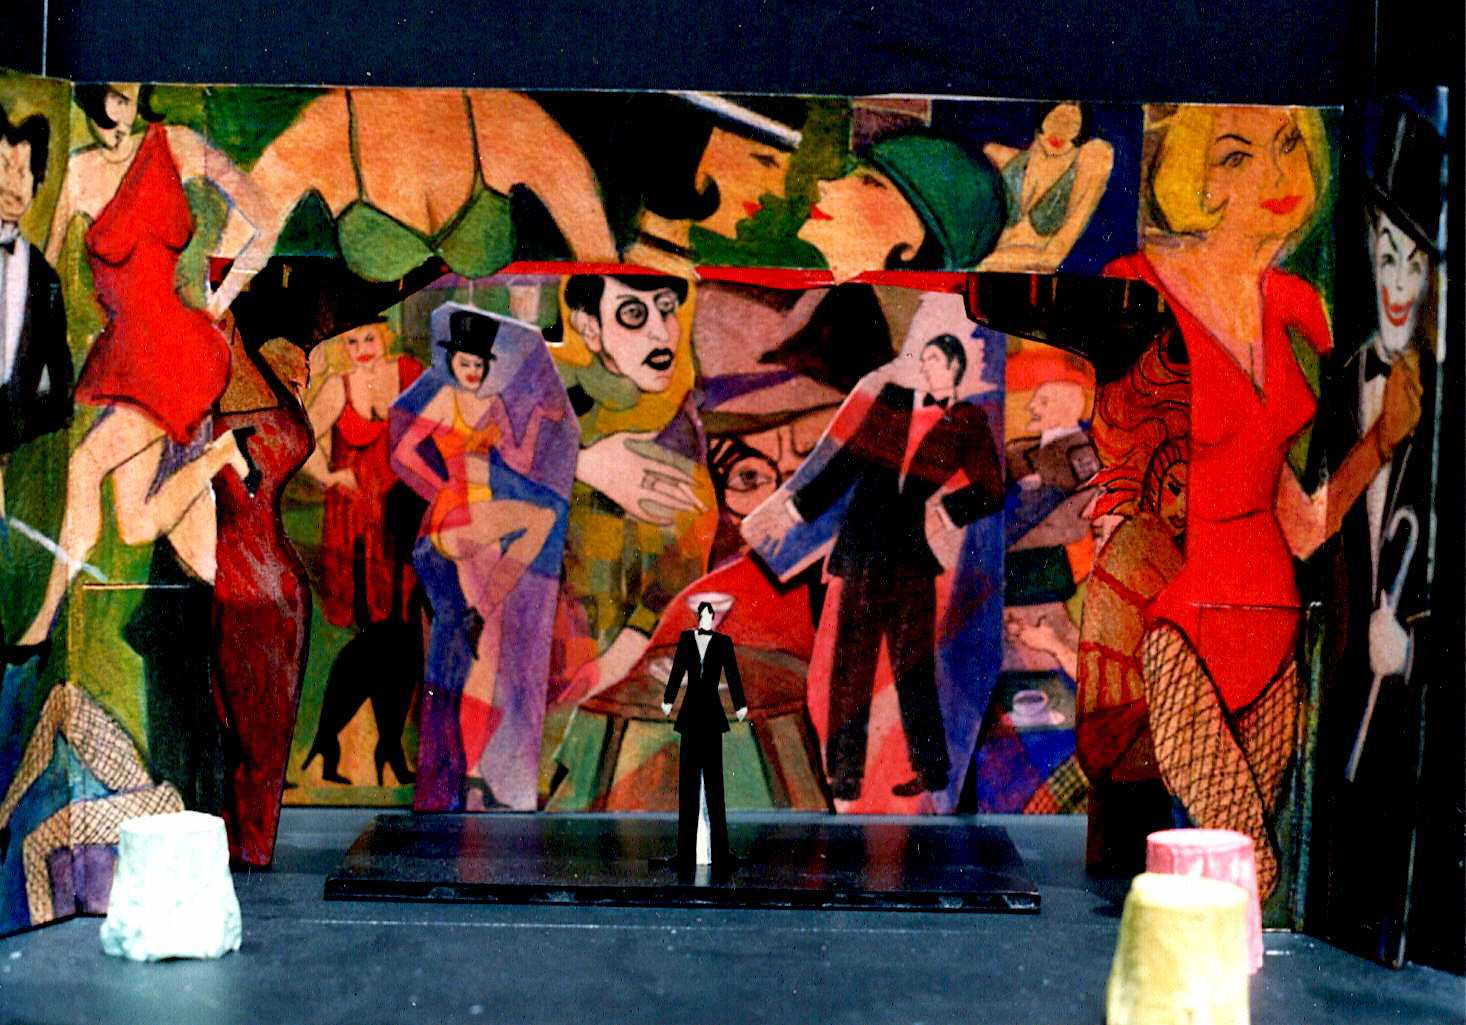 Model - Cabaret at the The Little Theater on the Square, Sullivan, Illinois